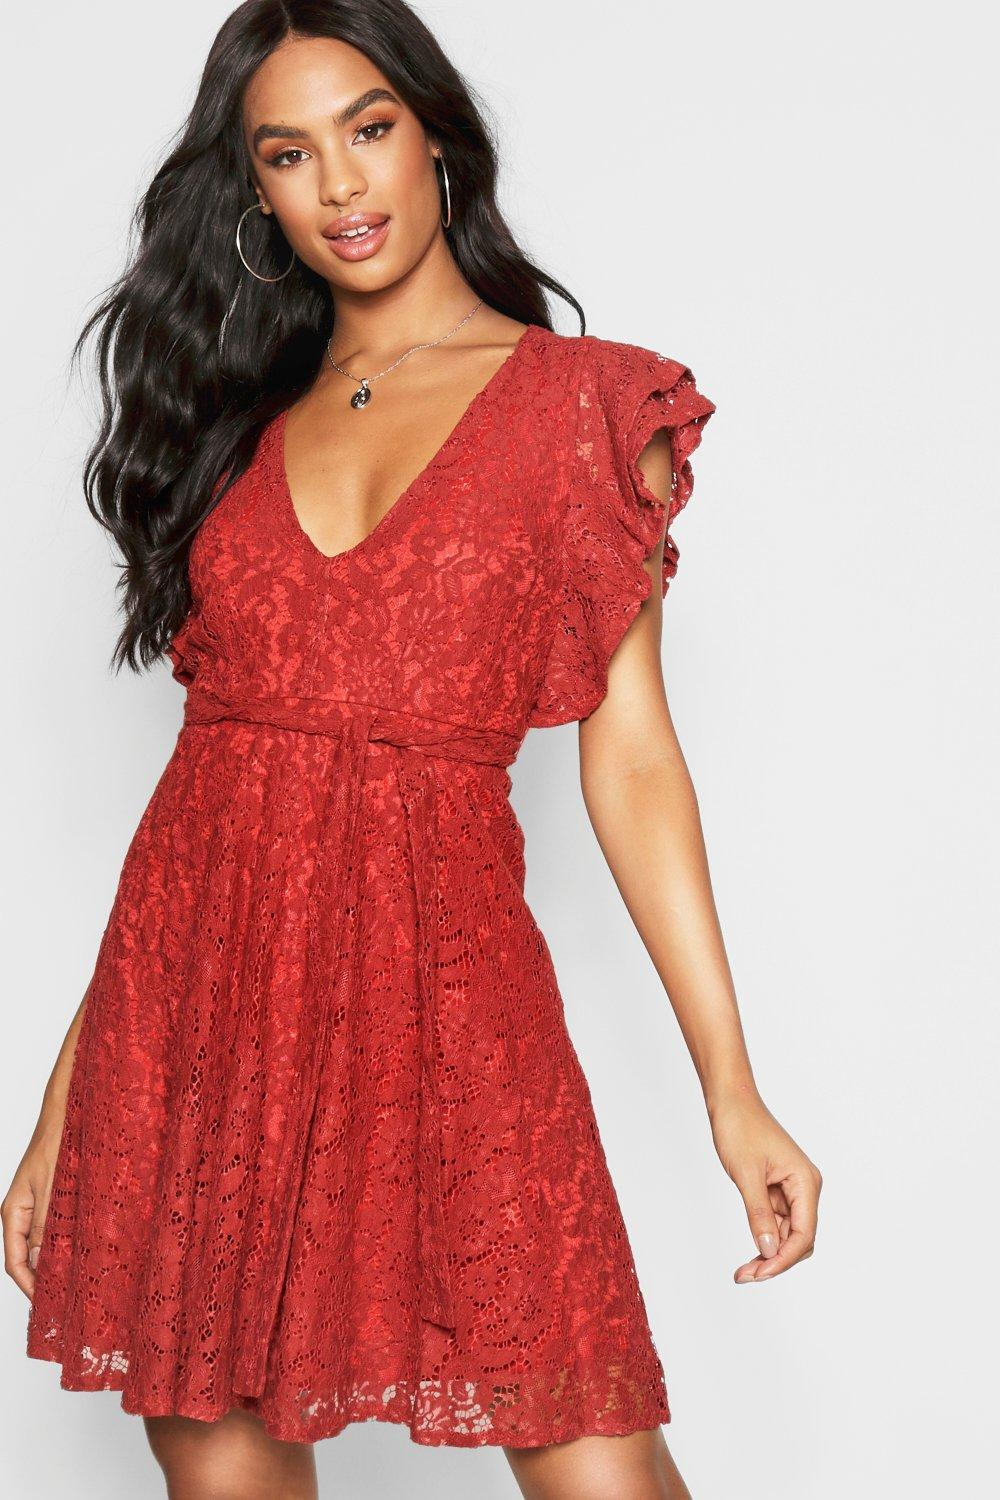 Boohoo Tall Ruffle Lace Skater Dress in Red - Lyst 80cc6cbc4